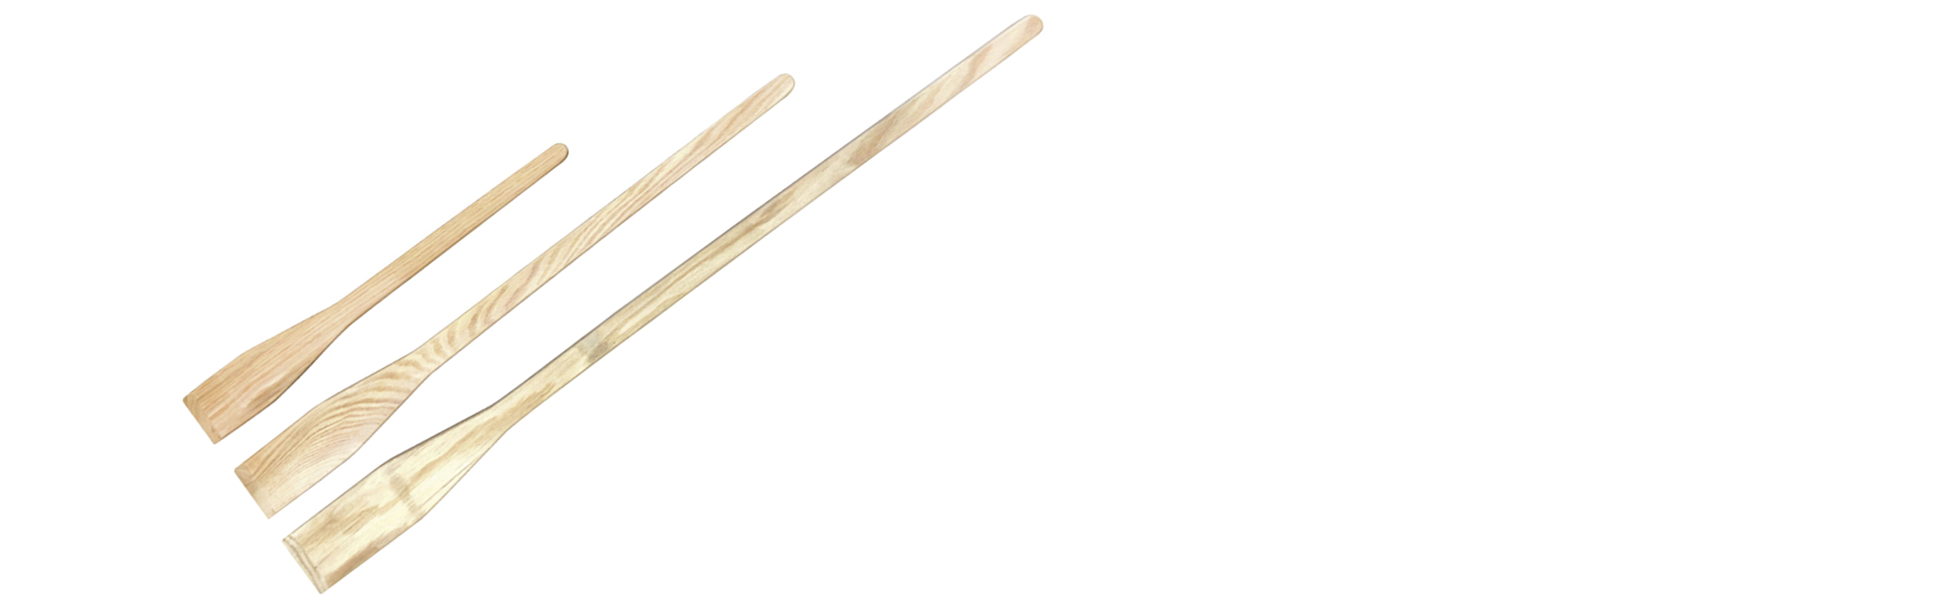 Wooden Mixing Paddle Set